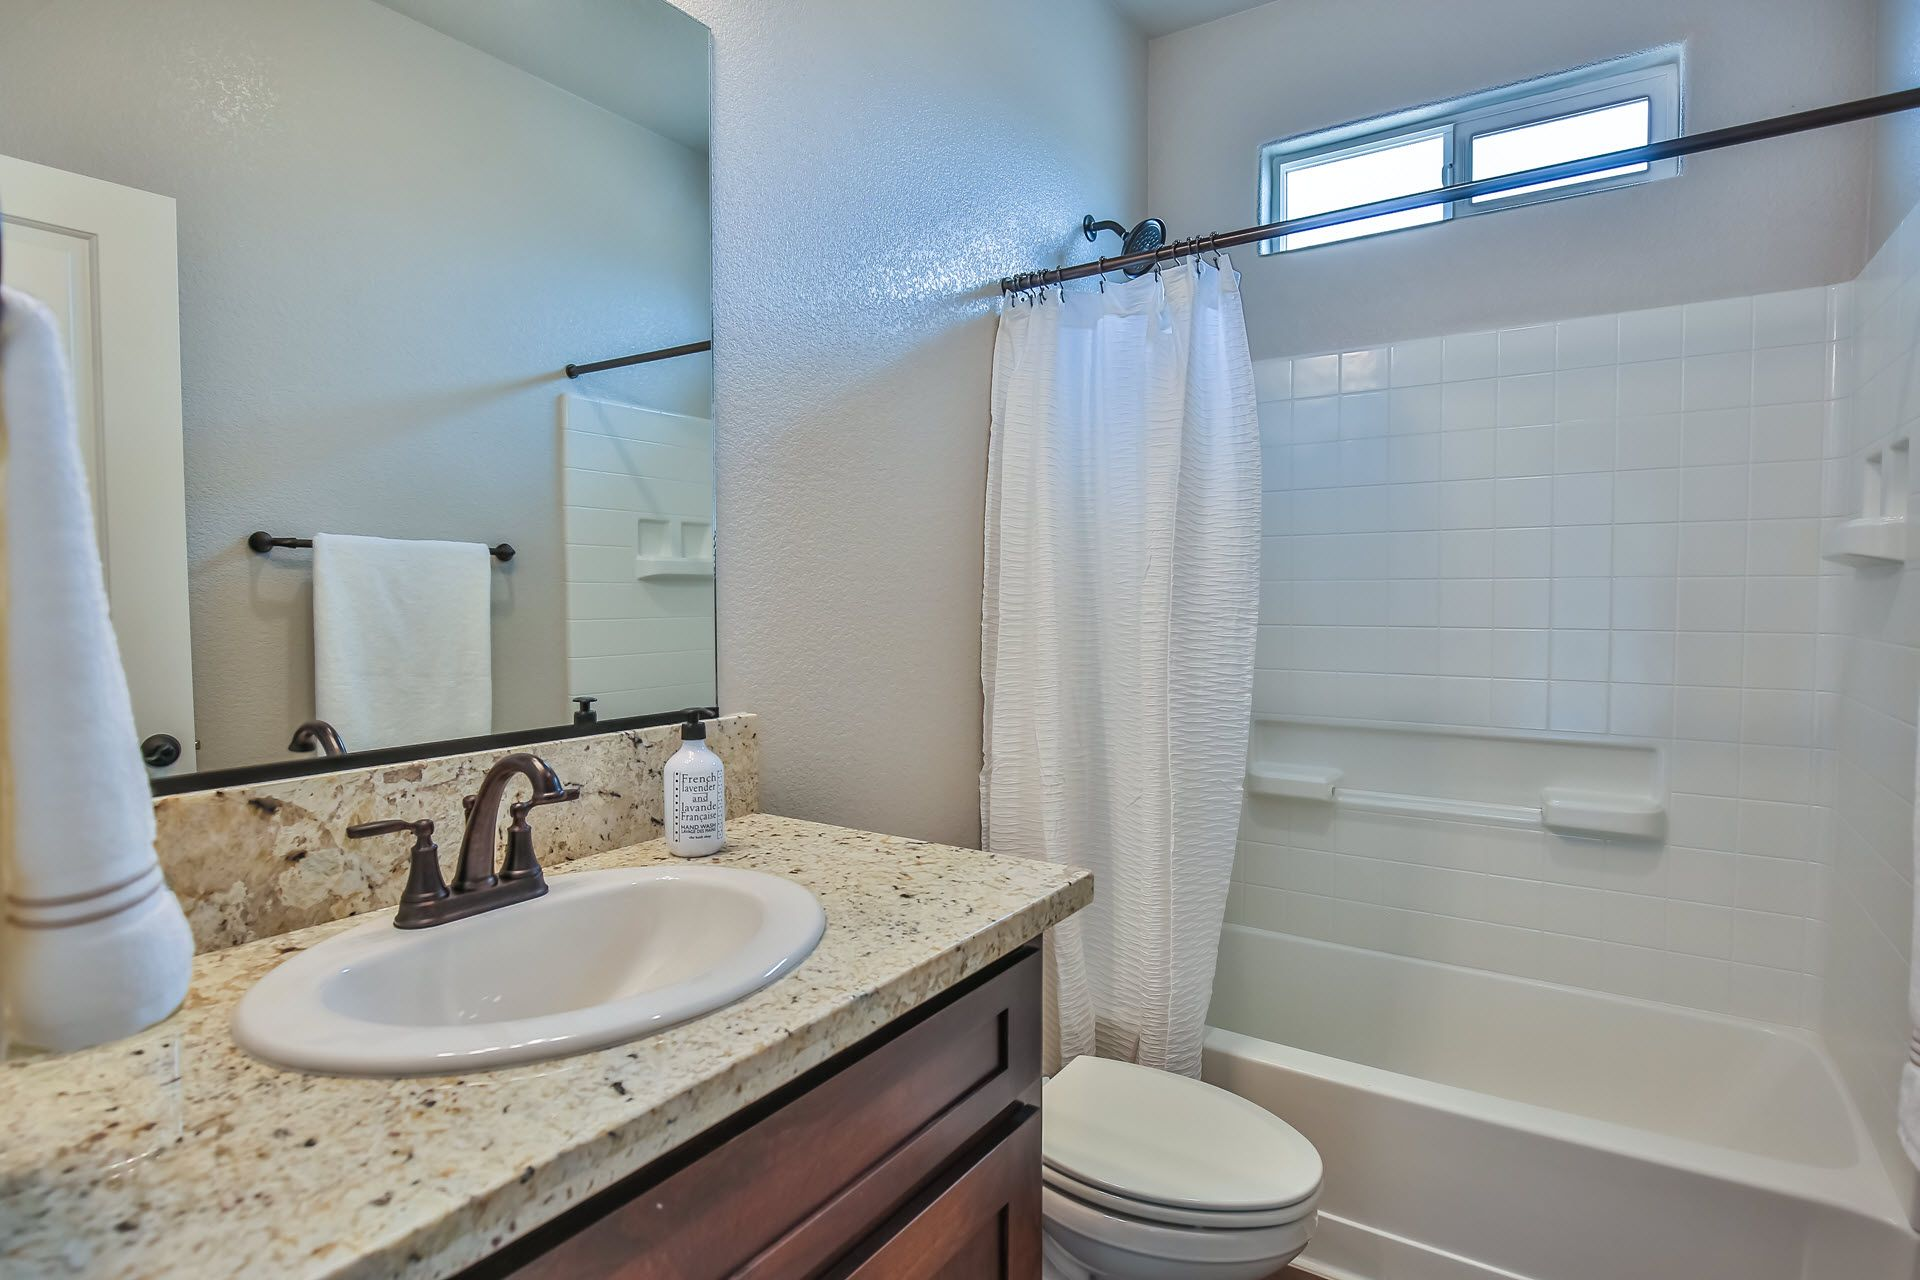 Bathroom featured in the Residence 2059 By Village by the Ponds  in Sacramento, CA